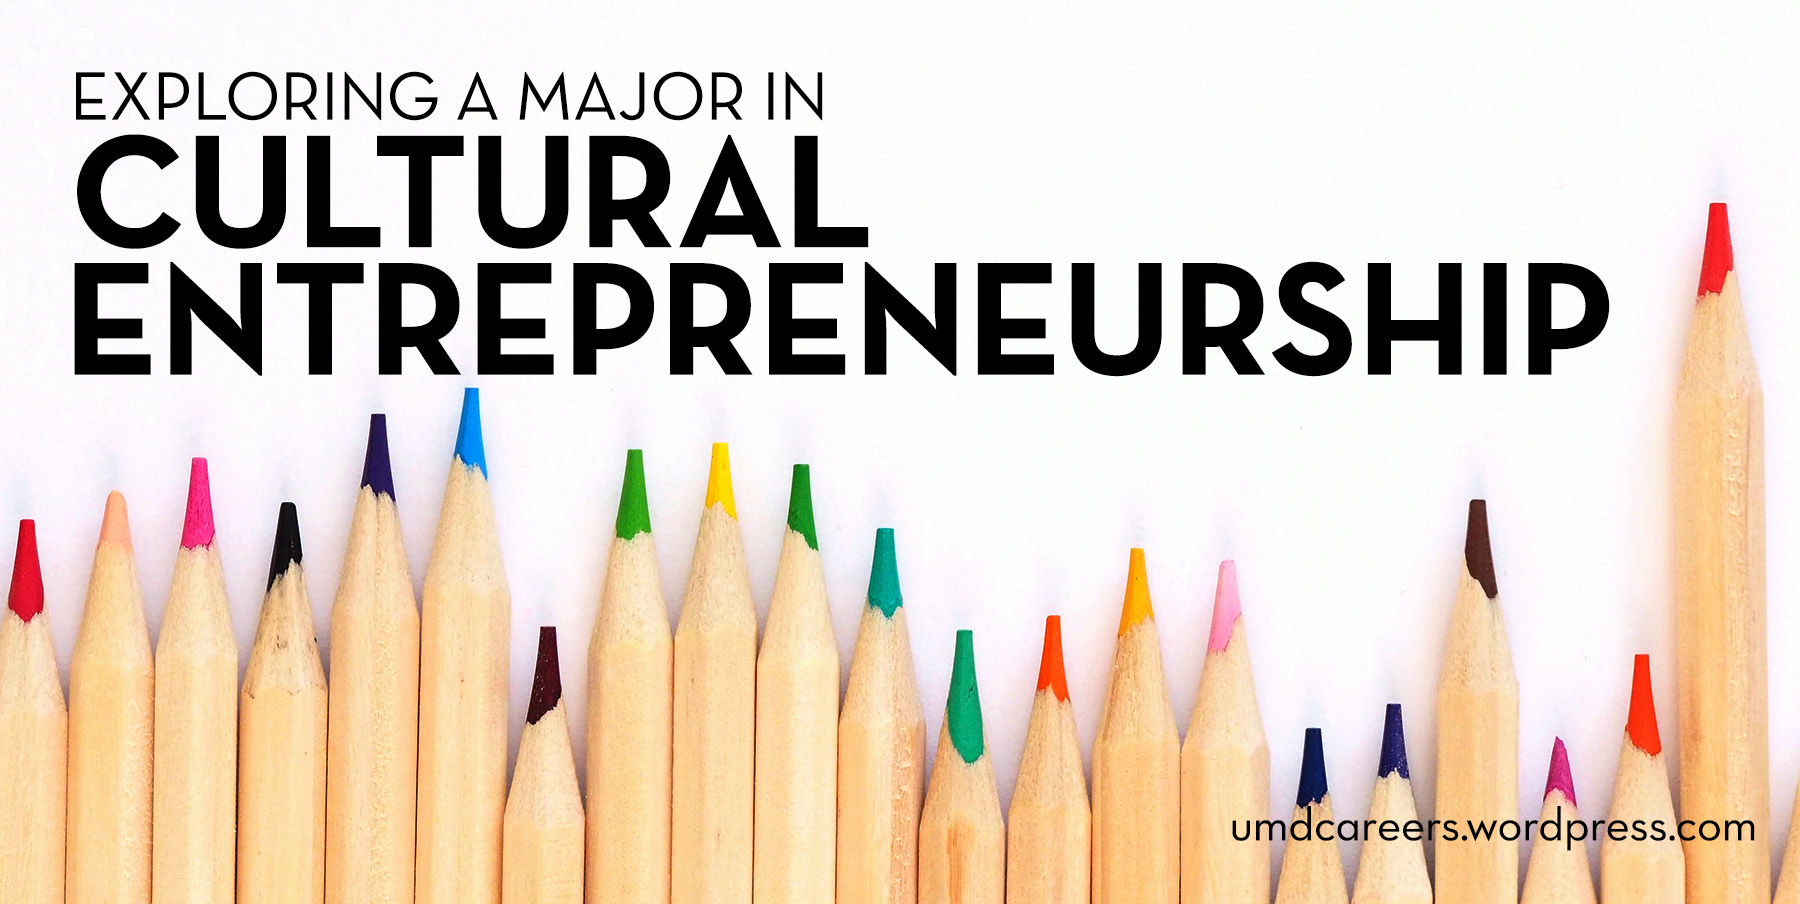 Exploring a major in cultural entrepreneurship